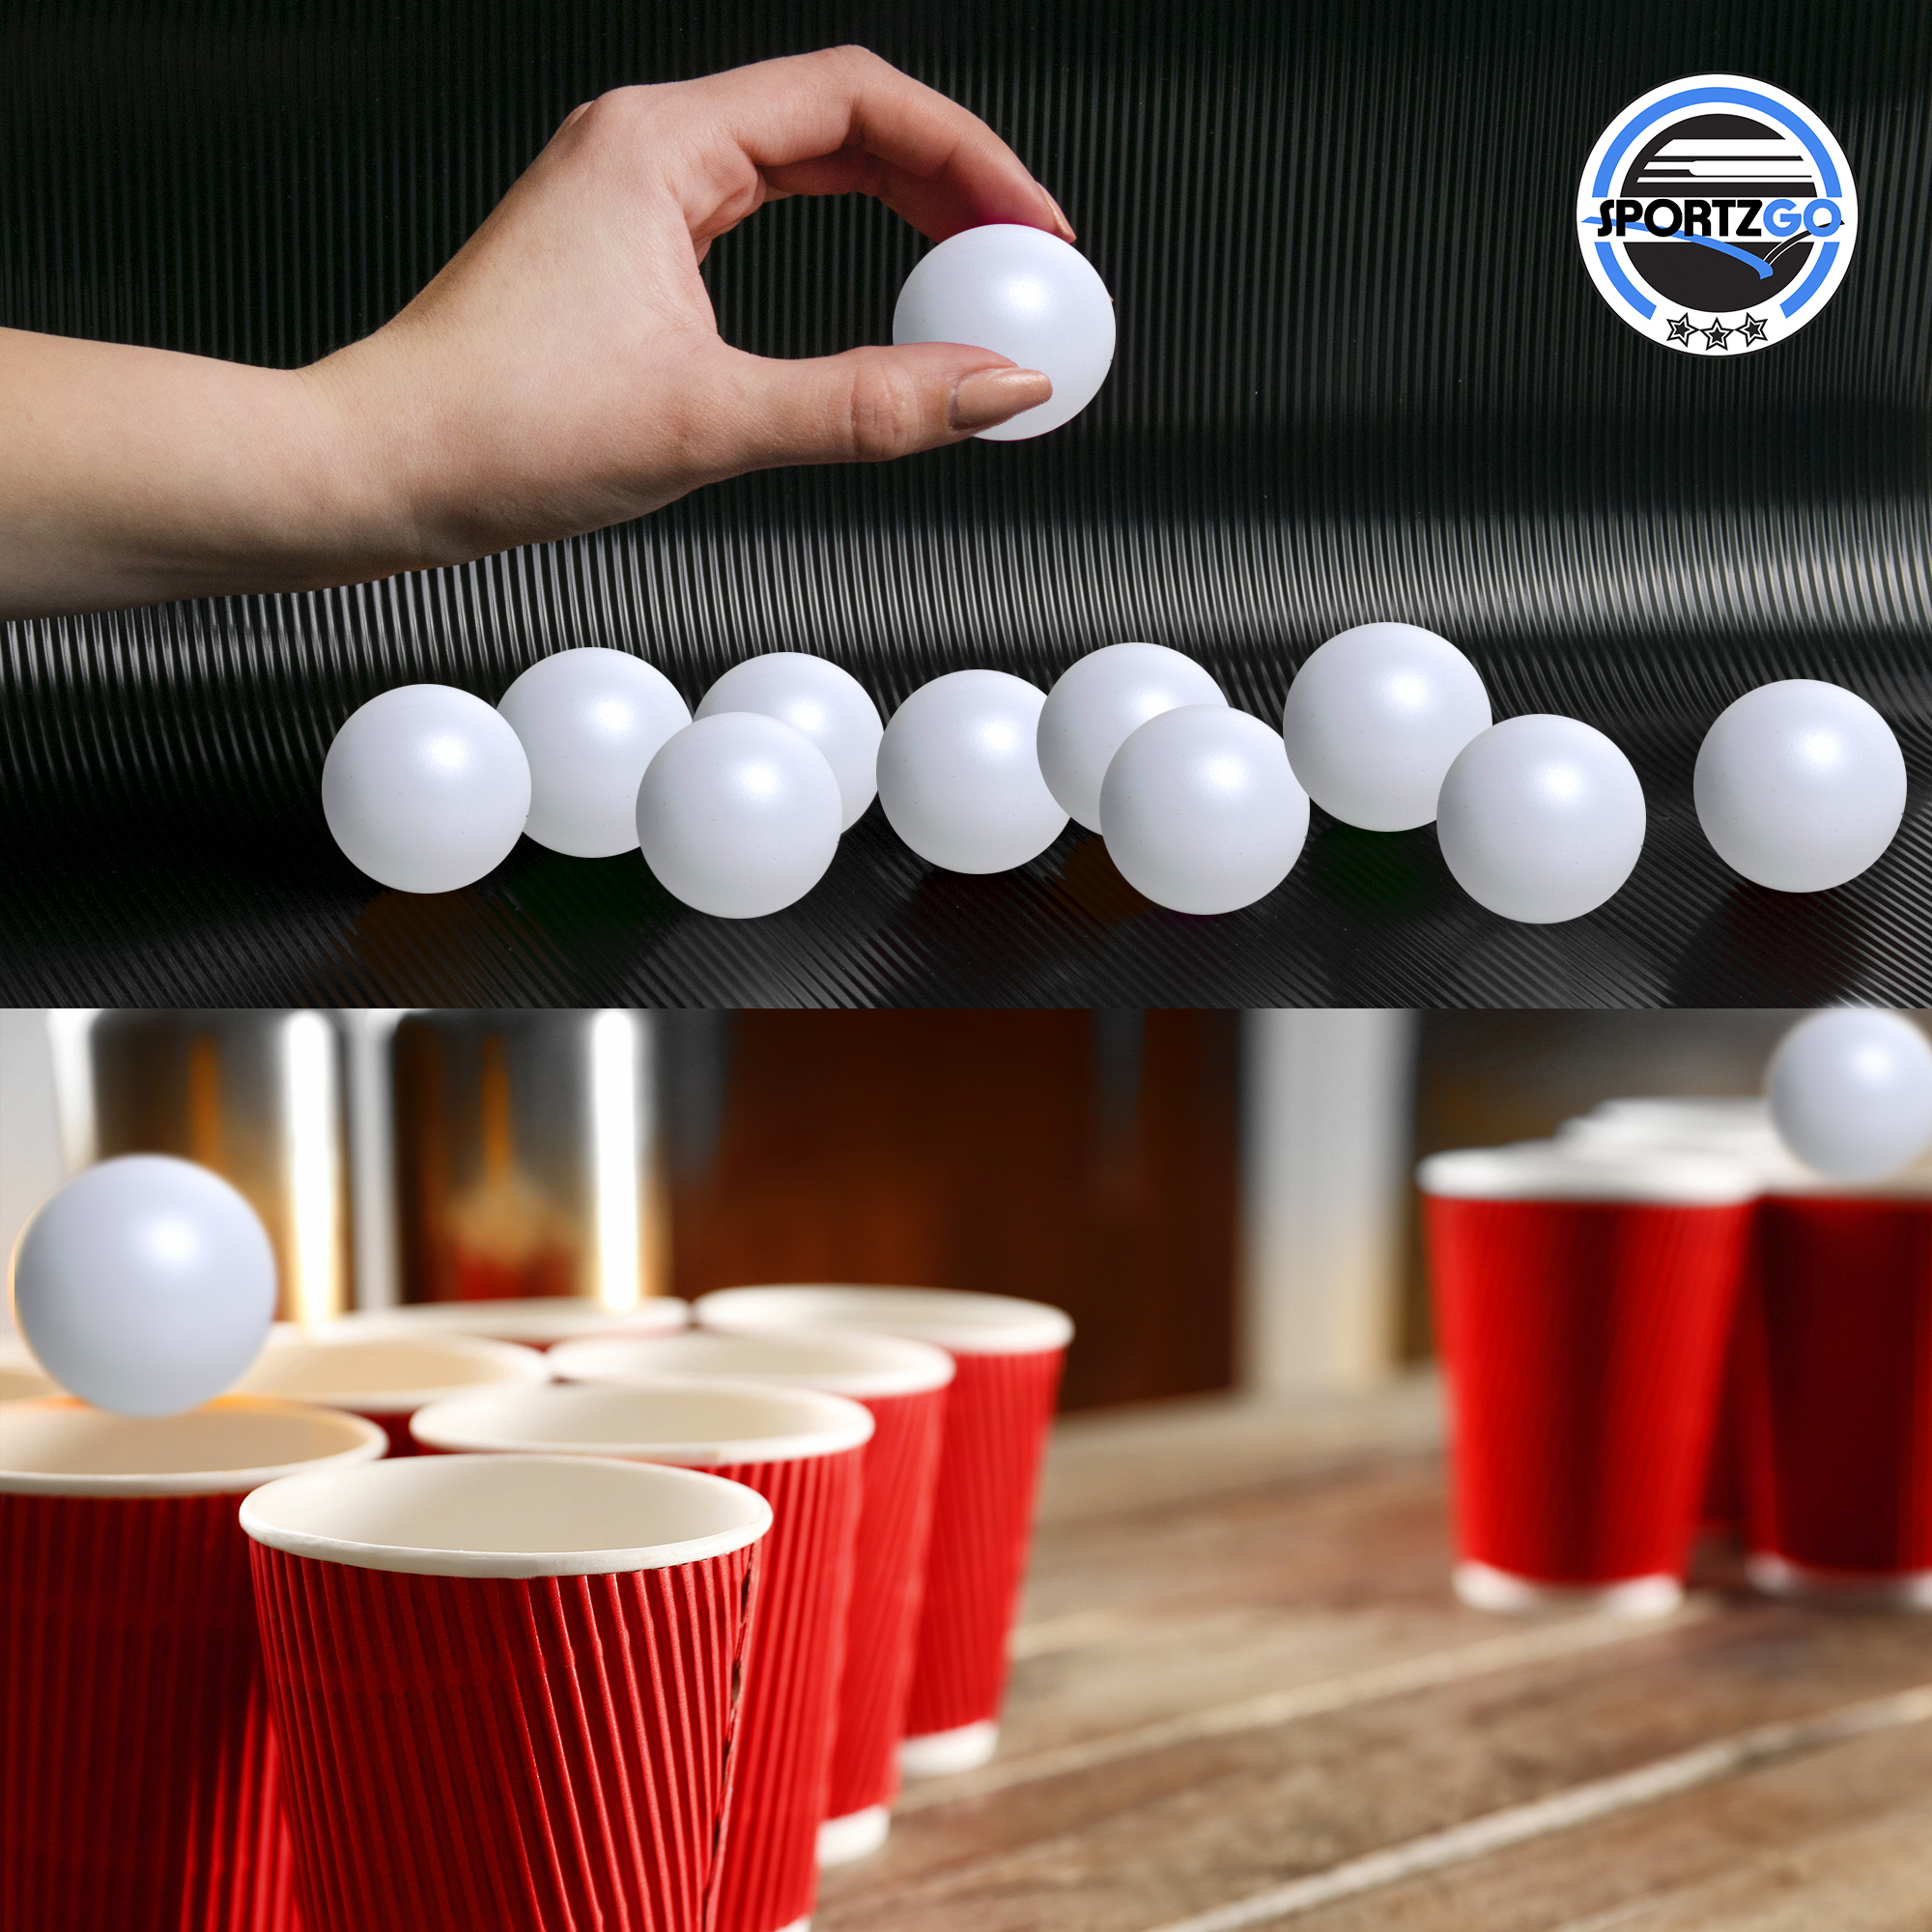 11 X 17 Beer Pong Beirut Drinking Game Official Laminated Rules Regs Poster Sporting Goods Other Table Tennis Ping Pong